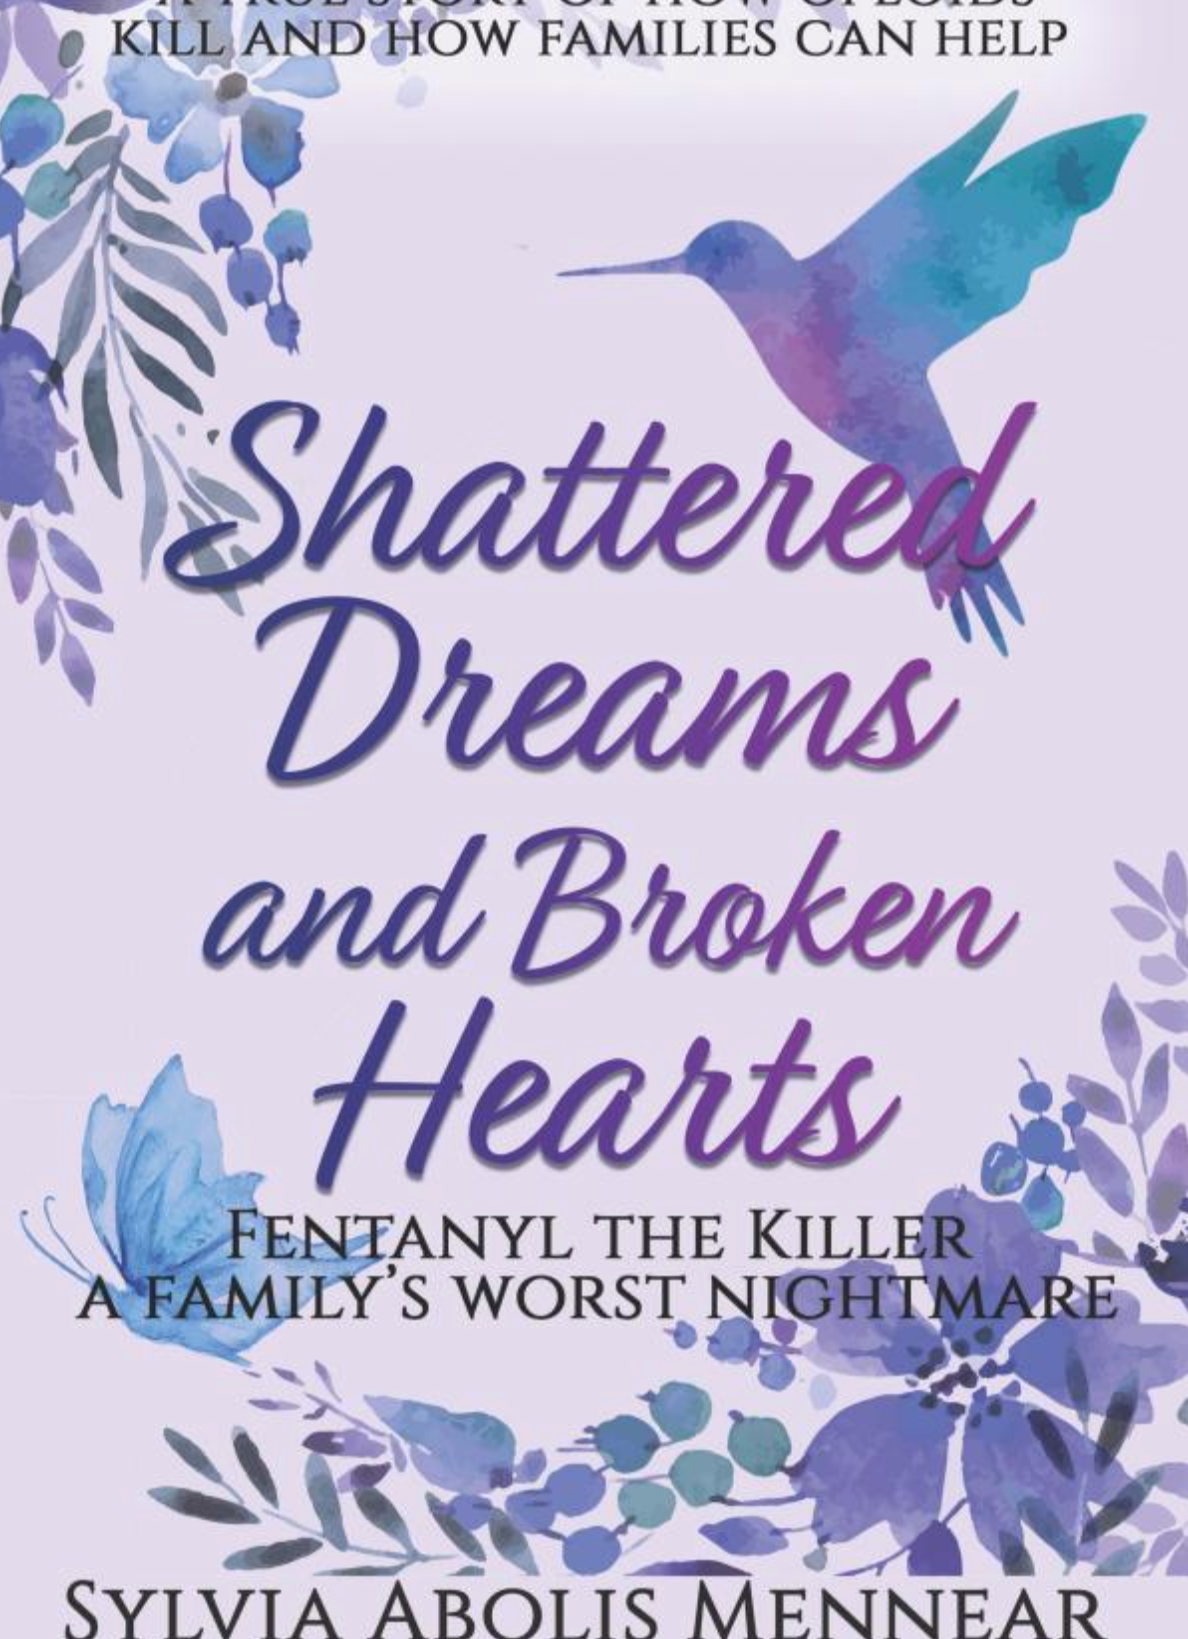 Shattered Dreams and Broken Hearts 'Fentanyl the Killer'